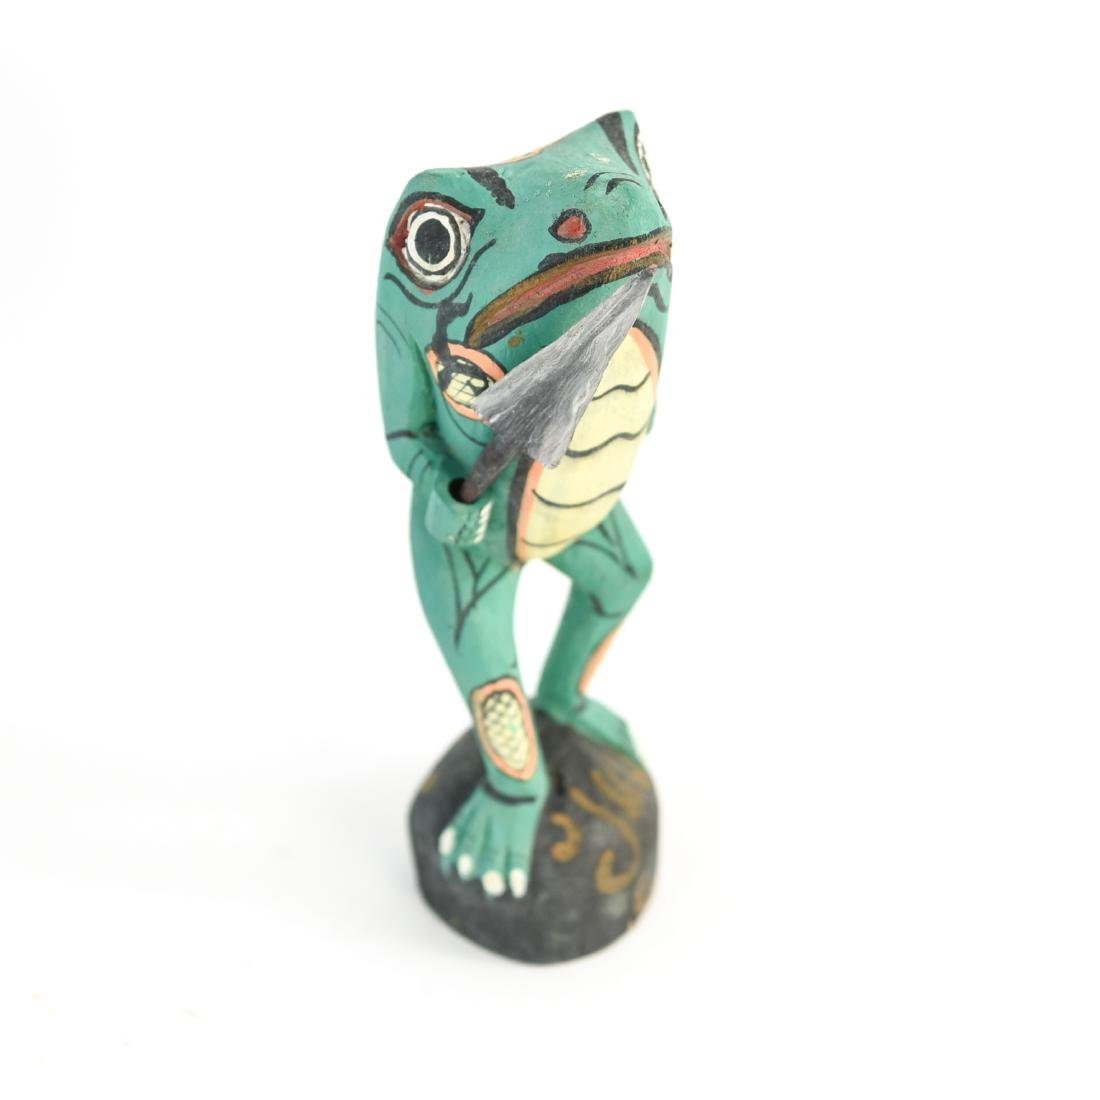 GROUPING OF FOLK ART WOODEN FROGS - 3